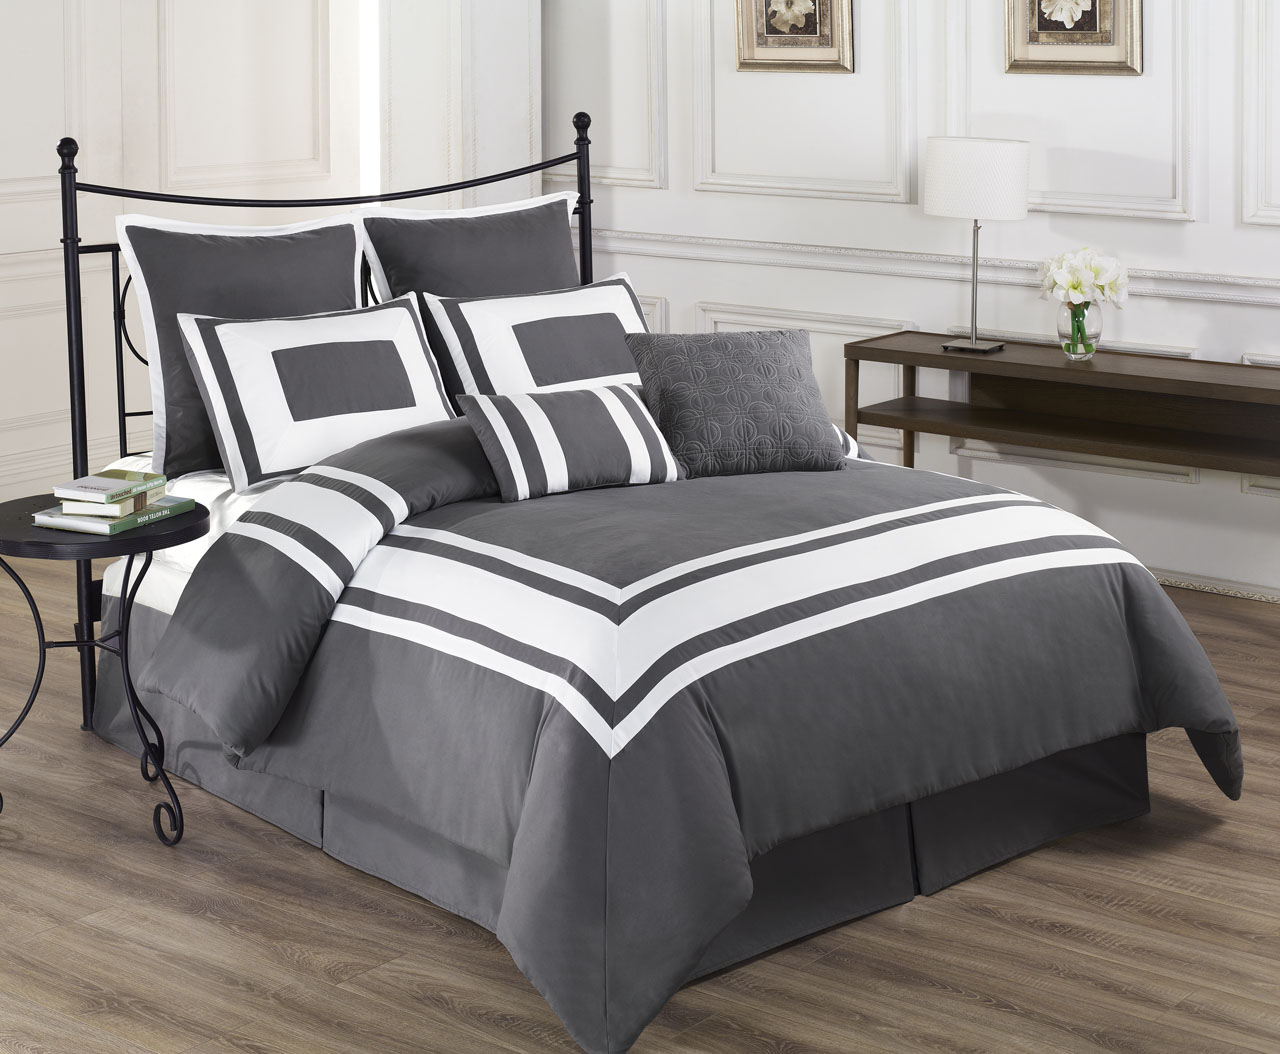 Grey bedding sets full size bedding sets collections for Complete bedroom sets with mattress